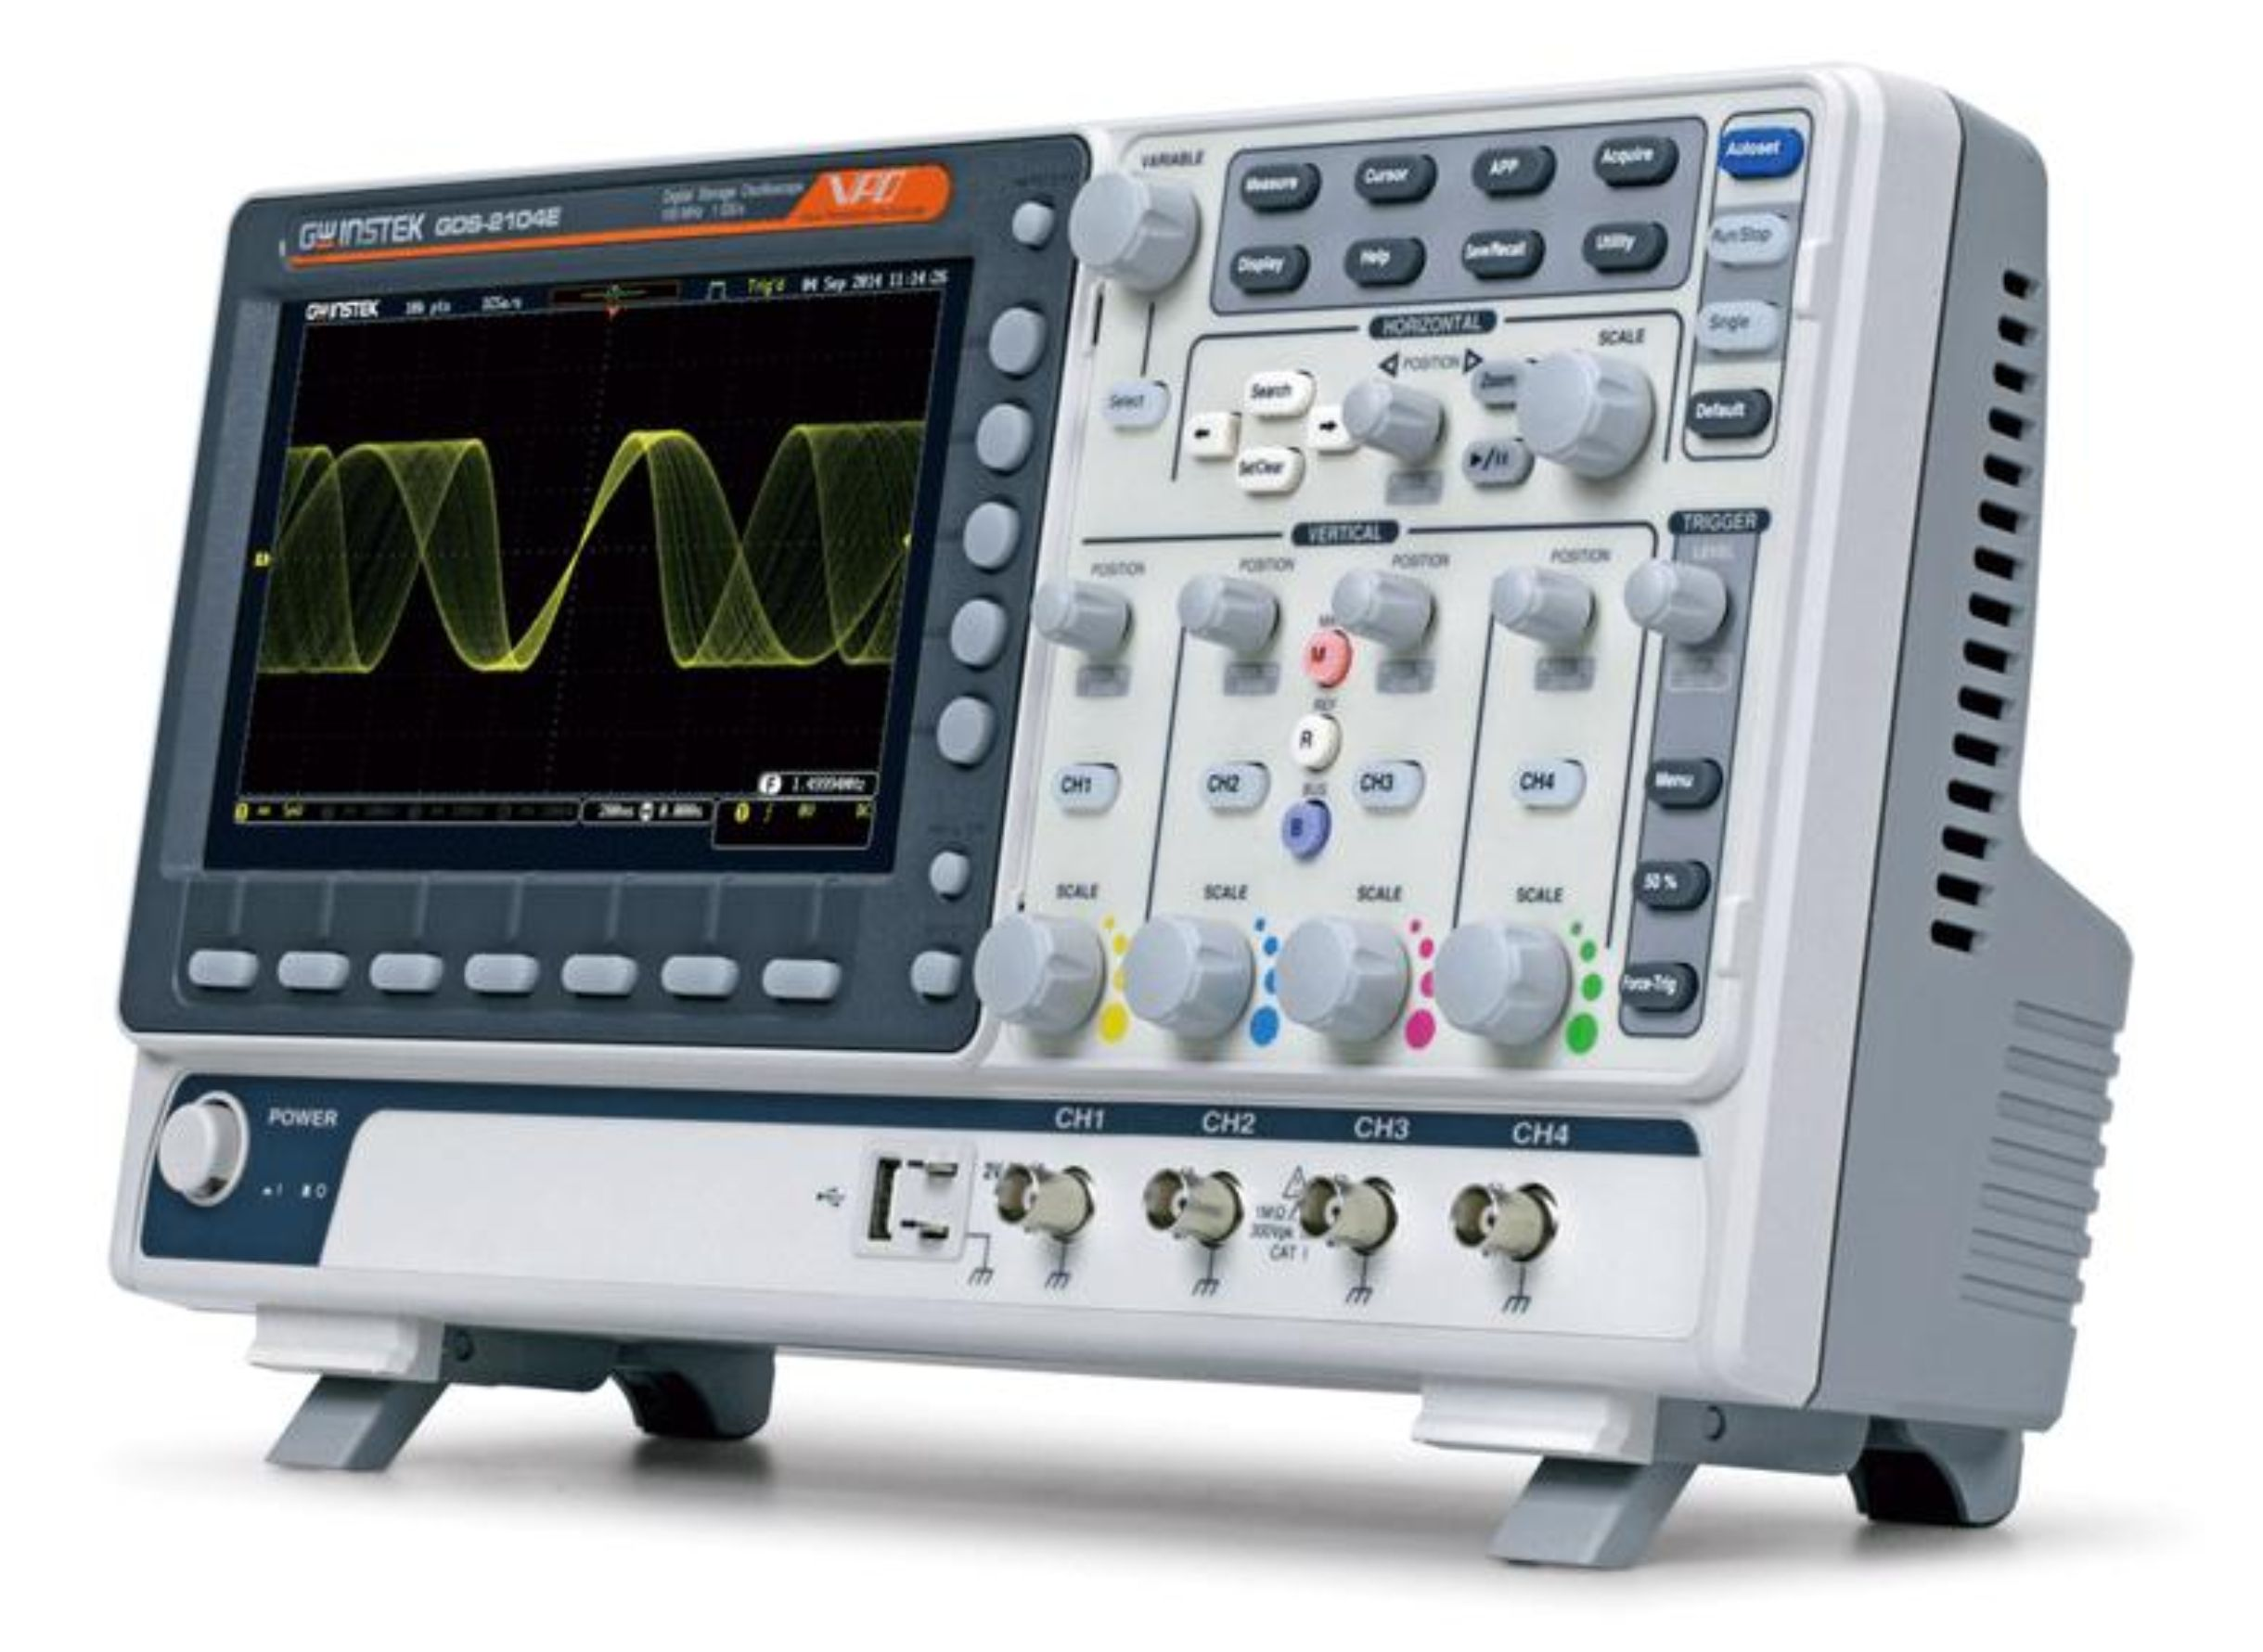 Digital Analog Oscilloscopes : Gw instek offers economic and efficient t m solutions for